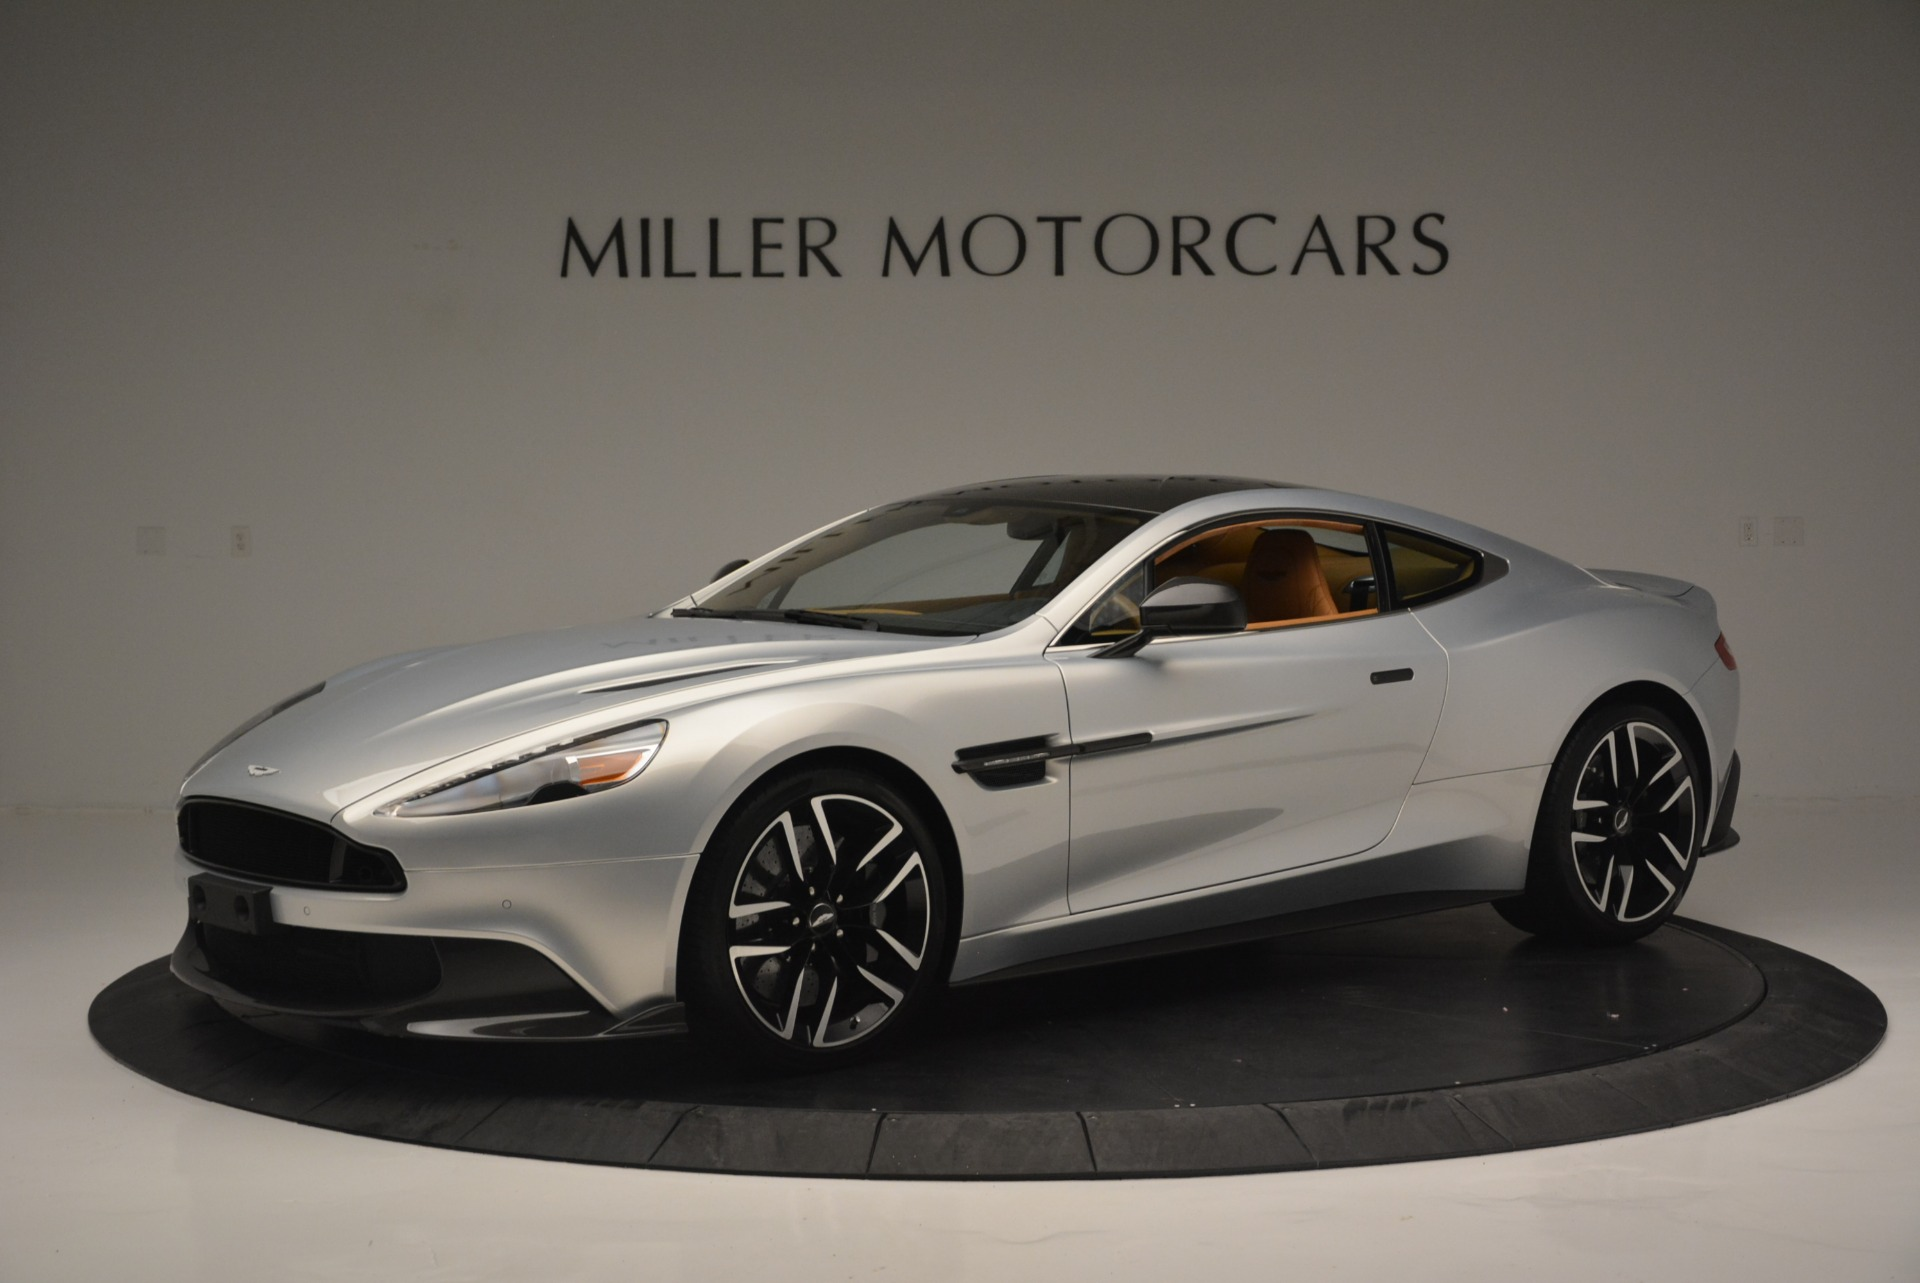 Used 2018 Aston Martin Vanquish S Coupe for sale Sold at Aston Martin of Greenwich in Greenwich CT 06830 1